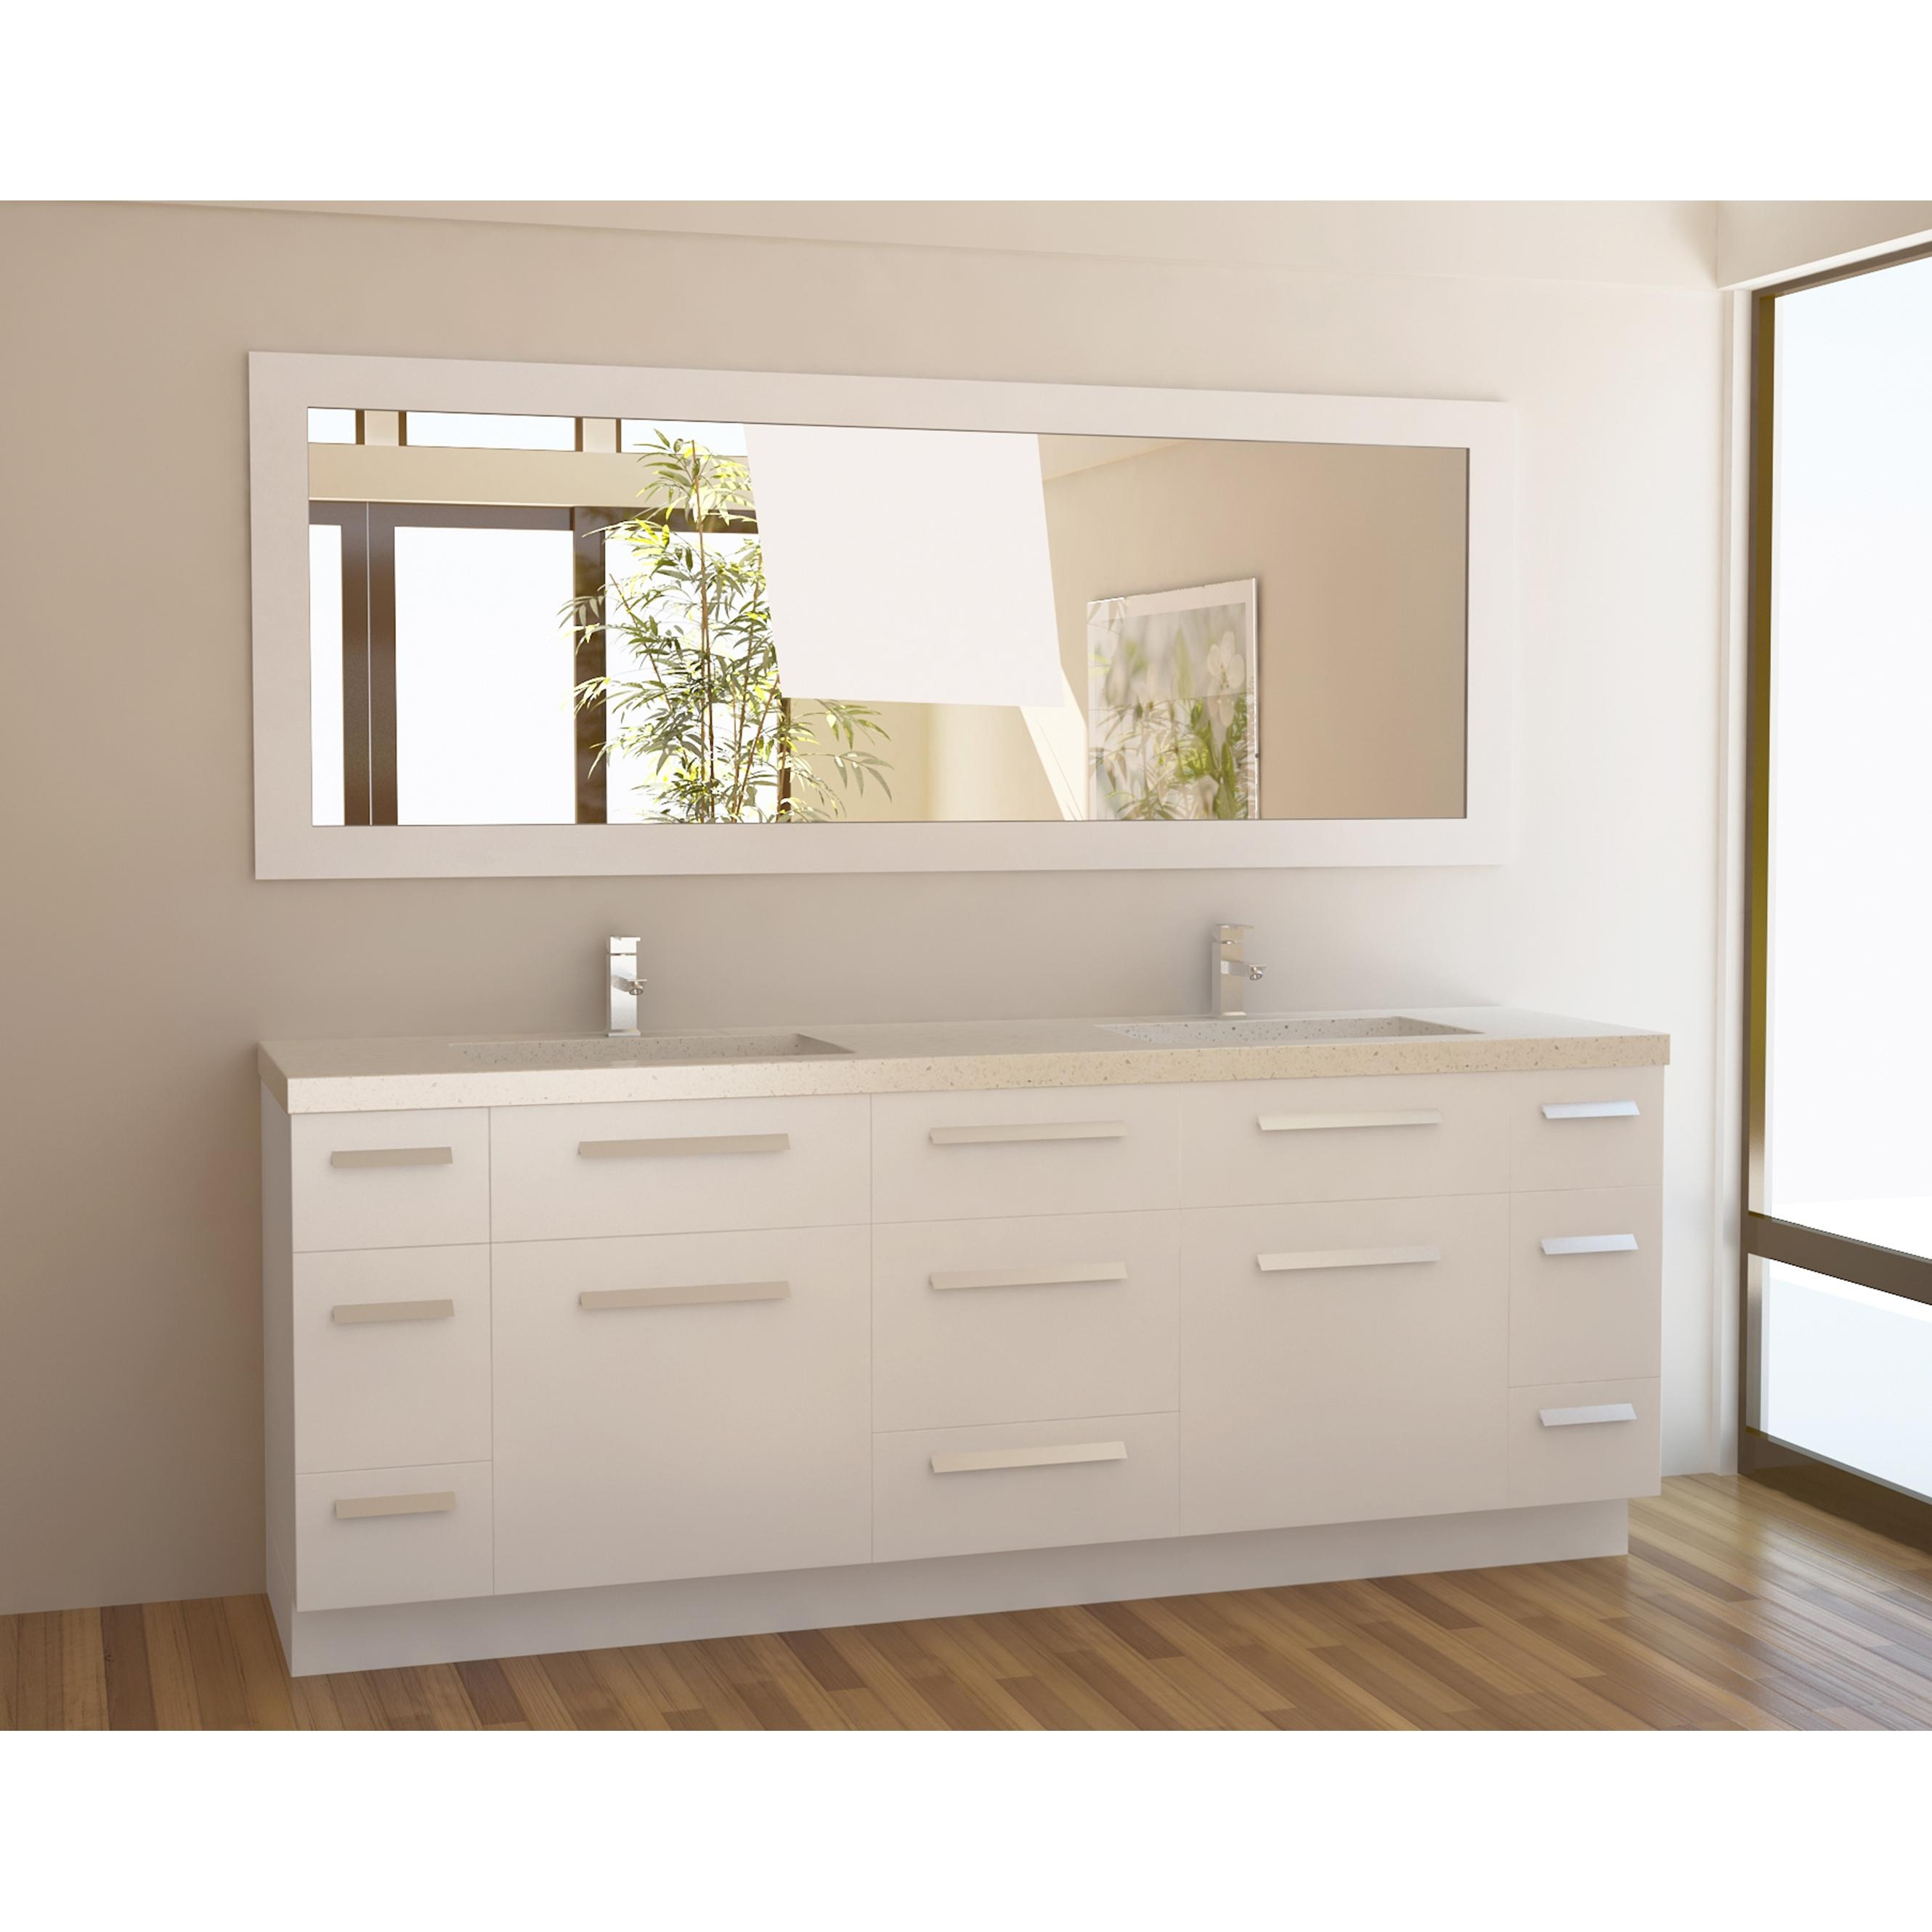 Bathroom Medicine Cabinets With Sliding Doors Bathroom